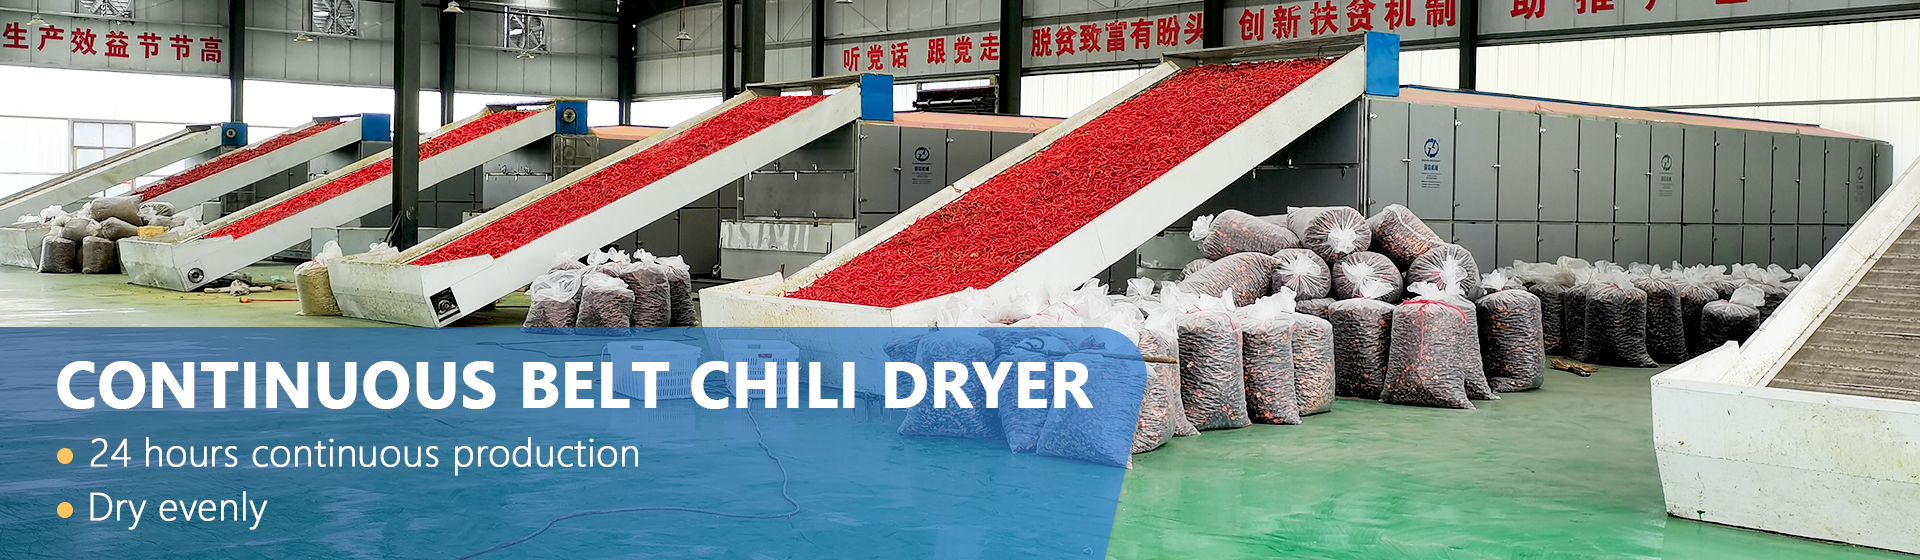 continuous belt chili dryers